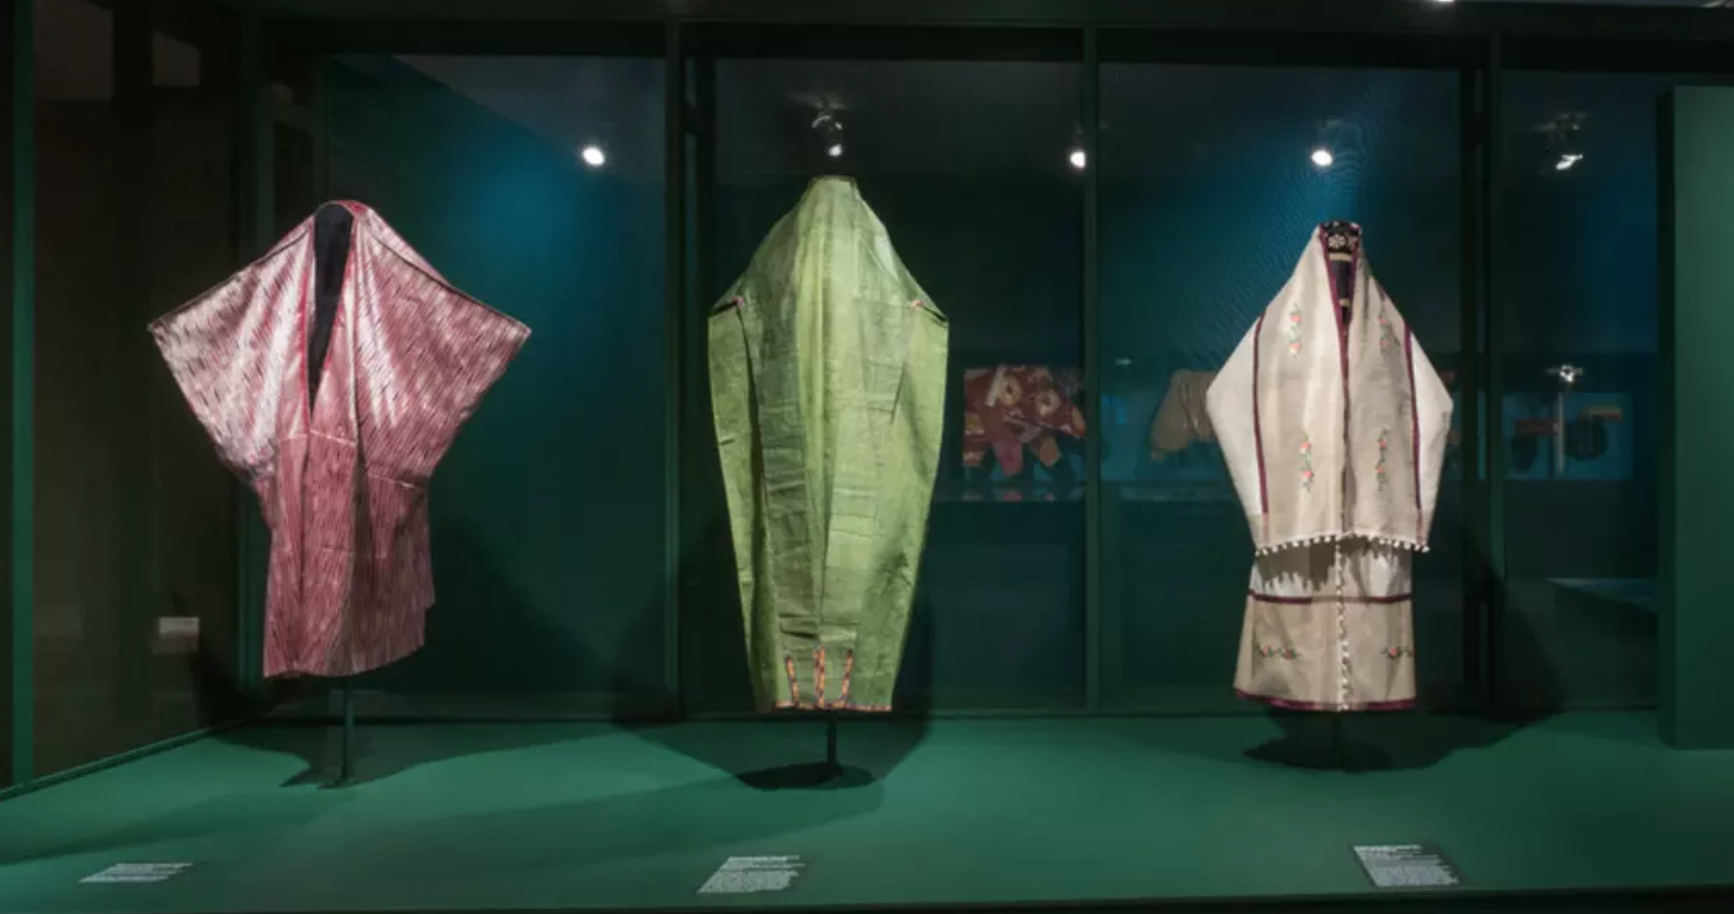 Installation view of the exhibition  Veiled Meanings: Fashioning Jewish Dress, from the Collection of The Israel Museum, Jerusalem . November 3, 2017 - March 18, 2018. Photo by: Jason Mandella